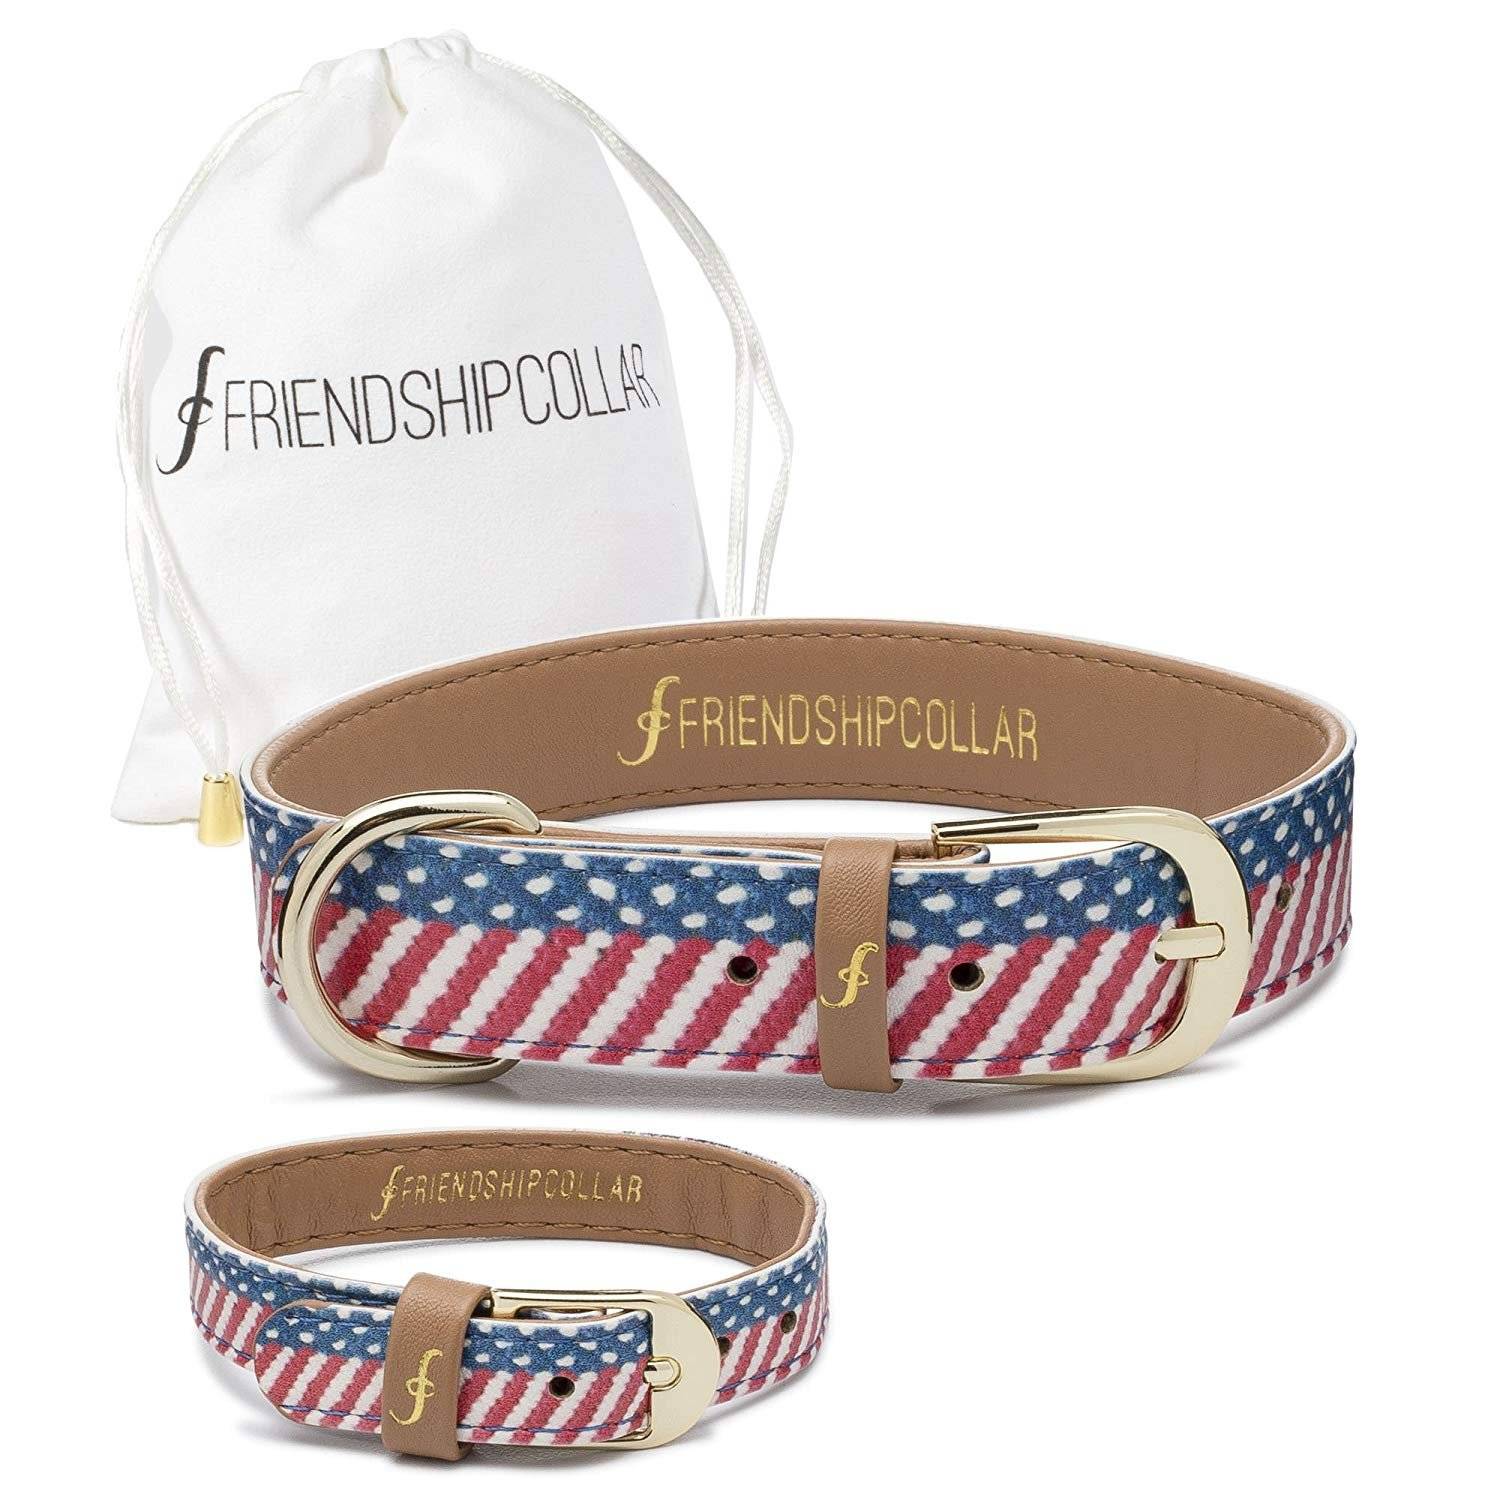 FriendshipCollar Dog Collar and Friendship Bracelet - The Presidential Dog - Small